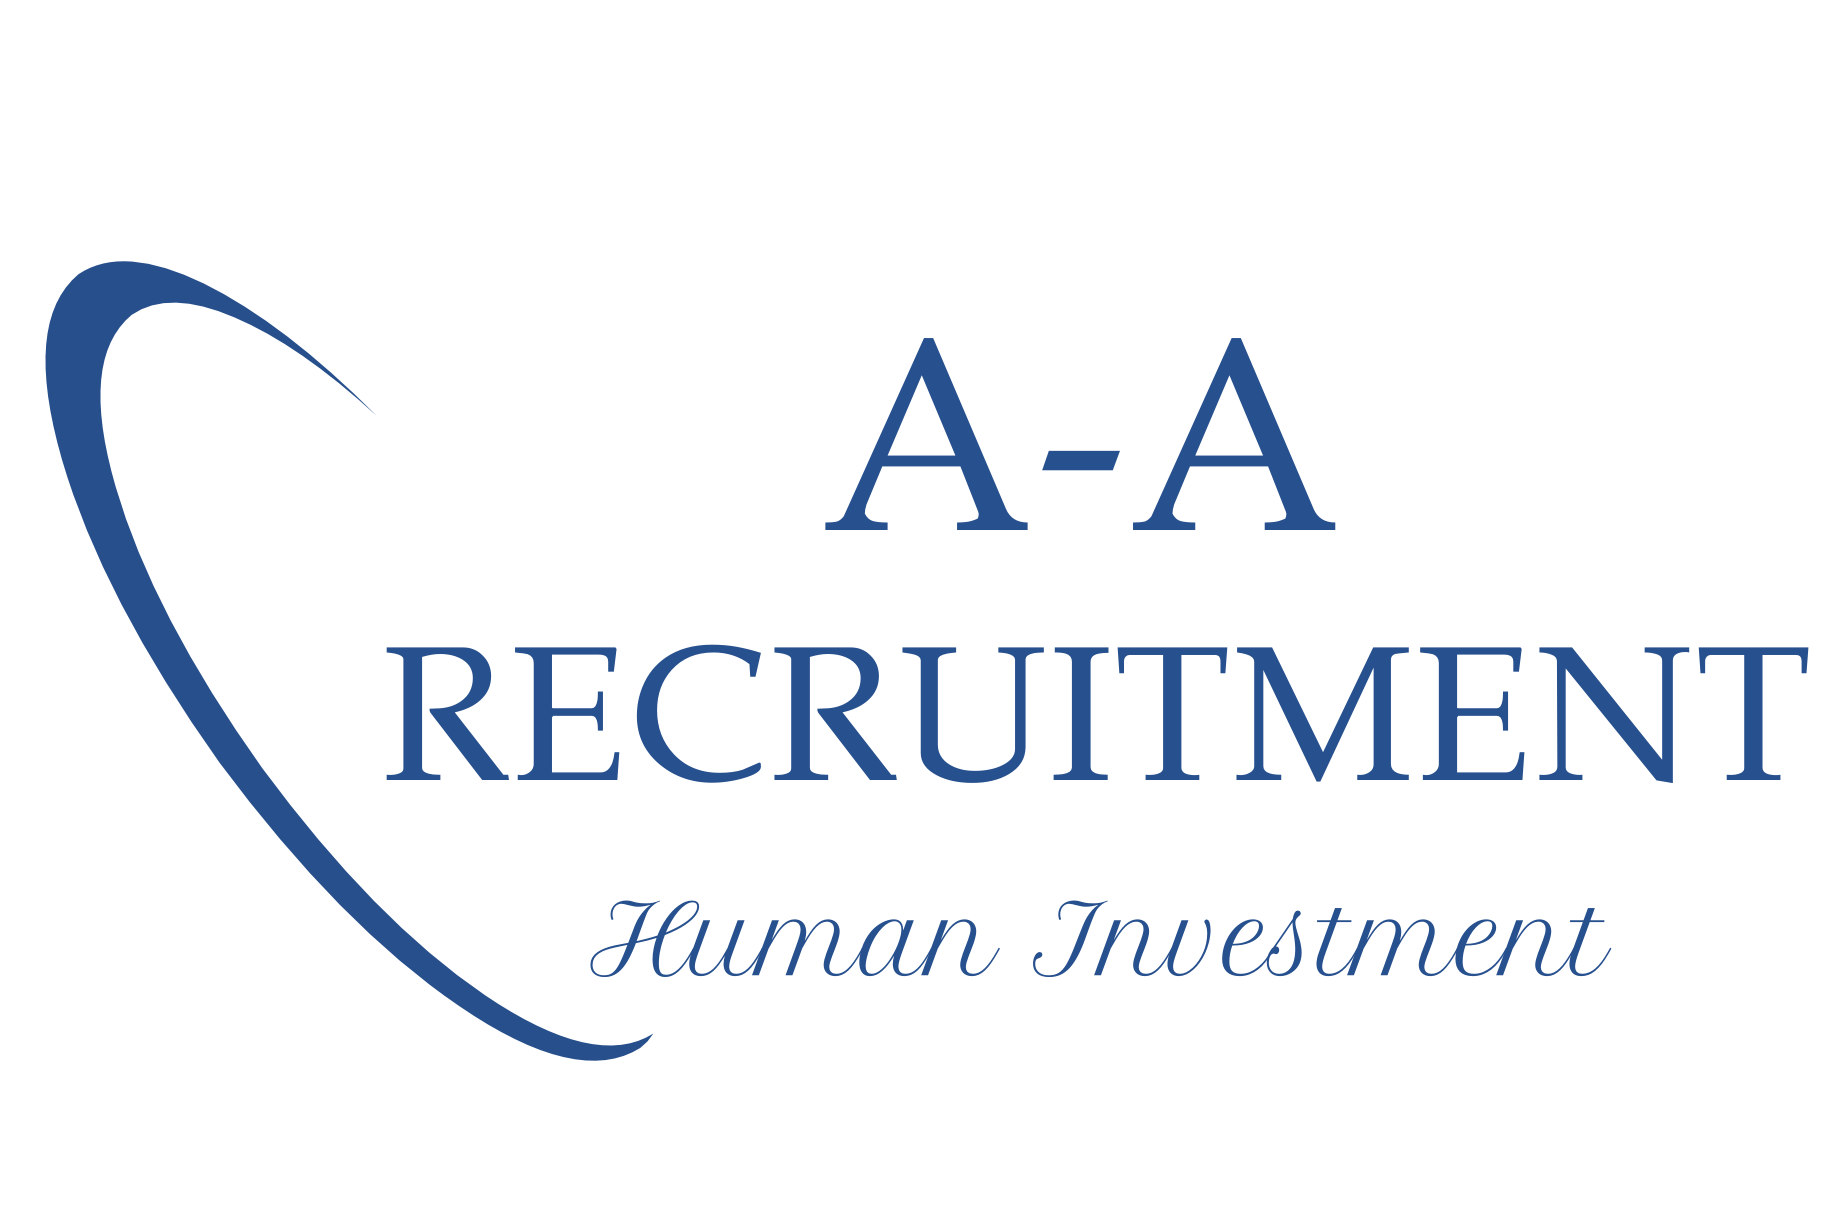 AA Recruitment | Werving en Selectie | Human Investment